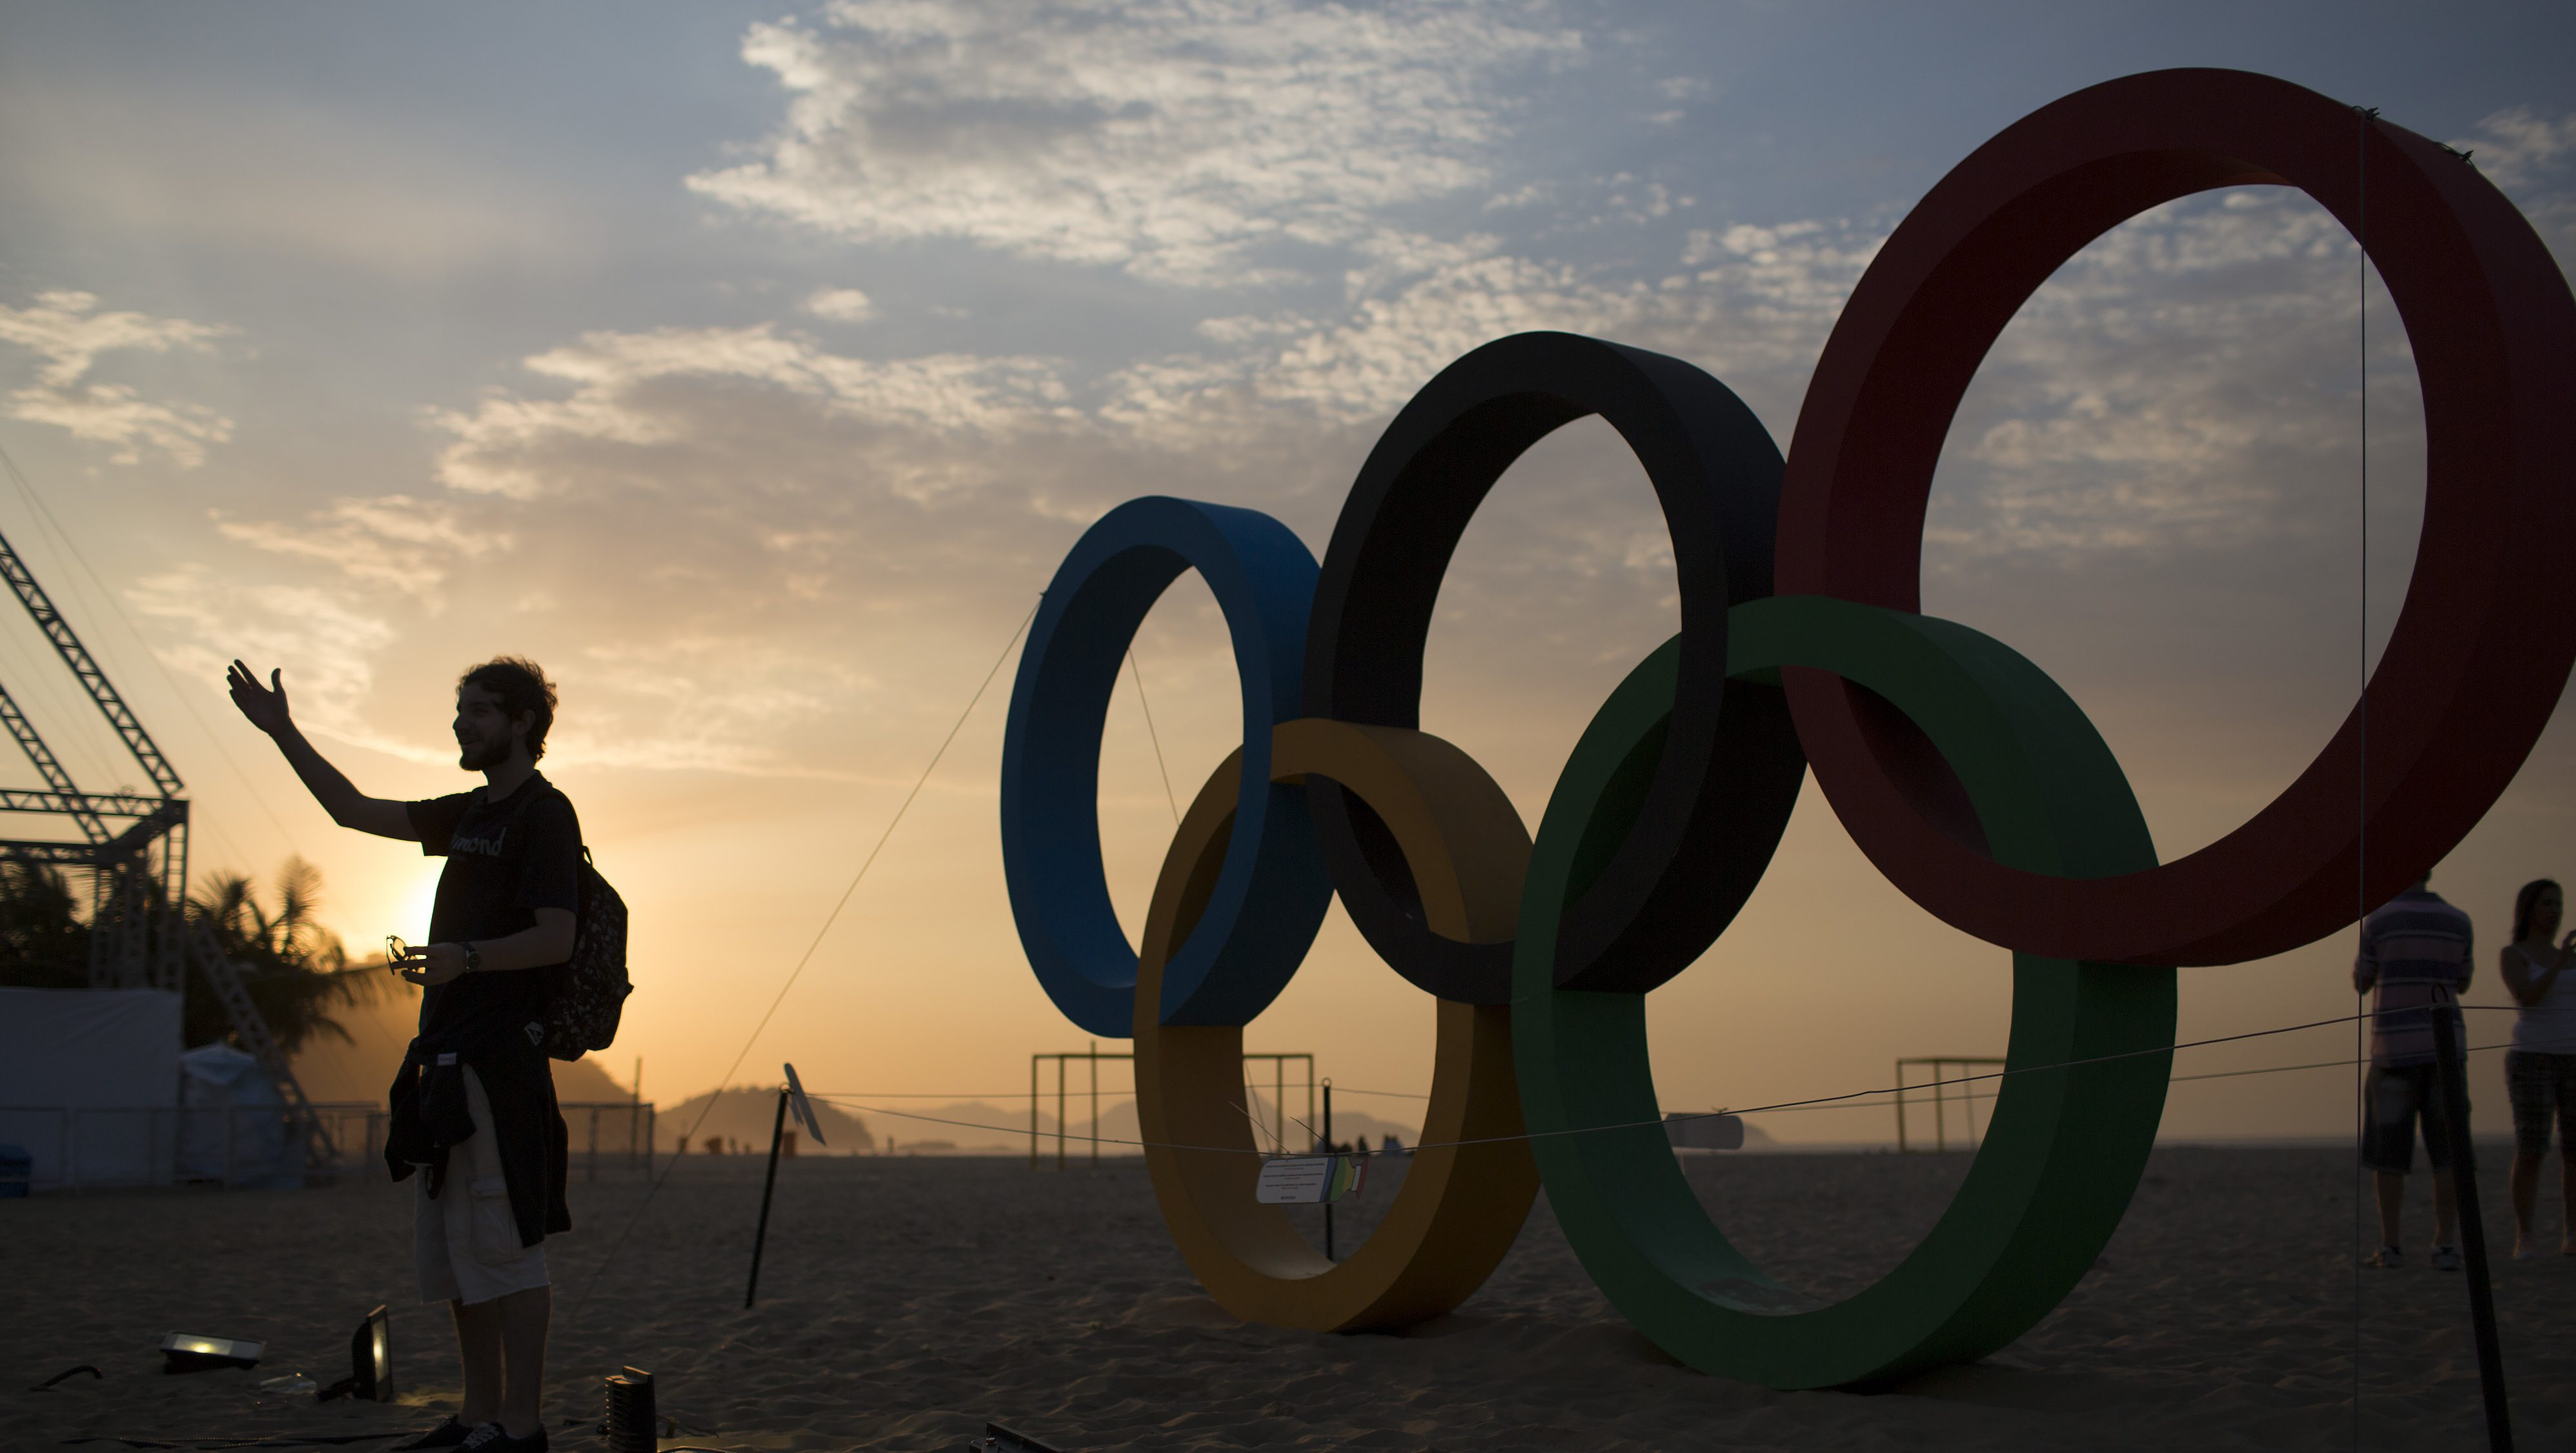 A man poses for a photo in front of the Olympic rings as the sun rises at the Copacabana beach in Rio de Janeiro, Brazil, Saturday, Aug. 20, 2016.